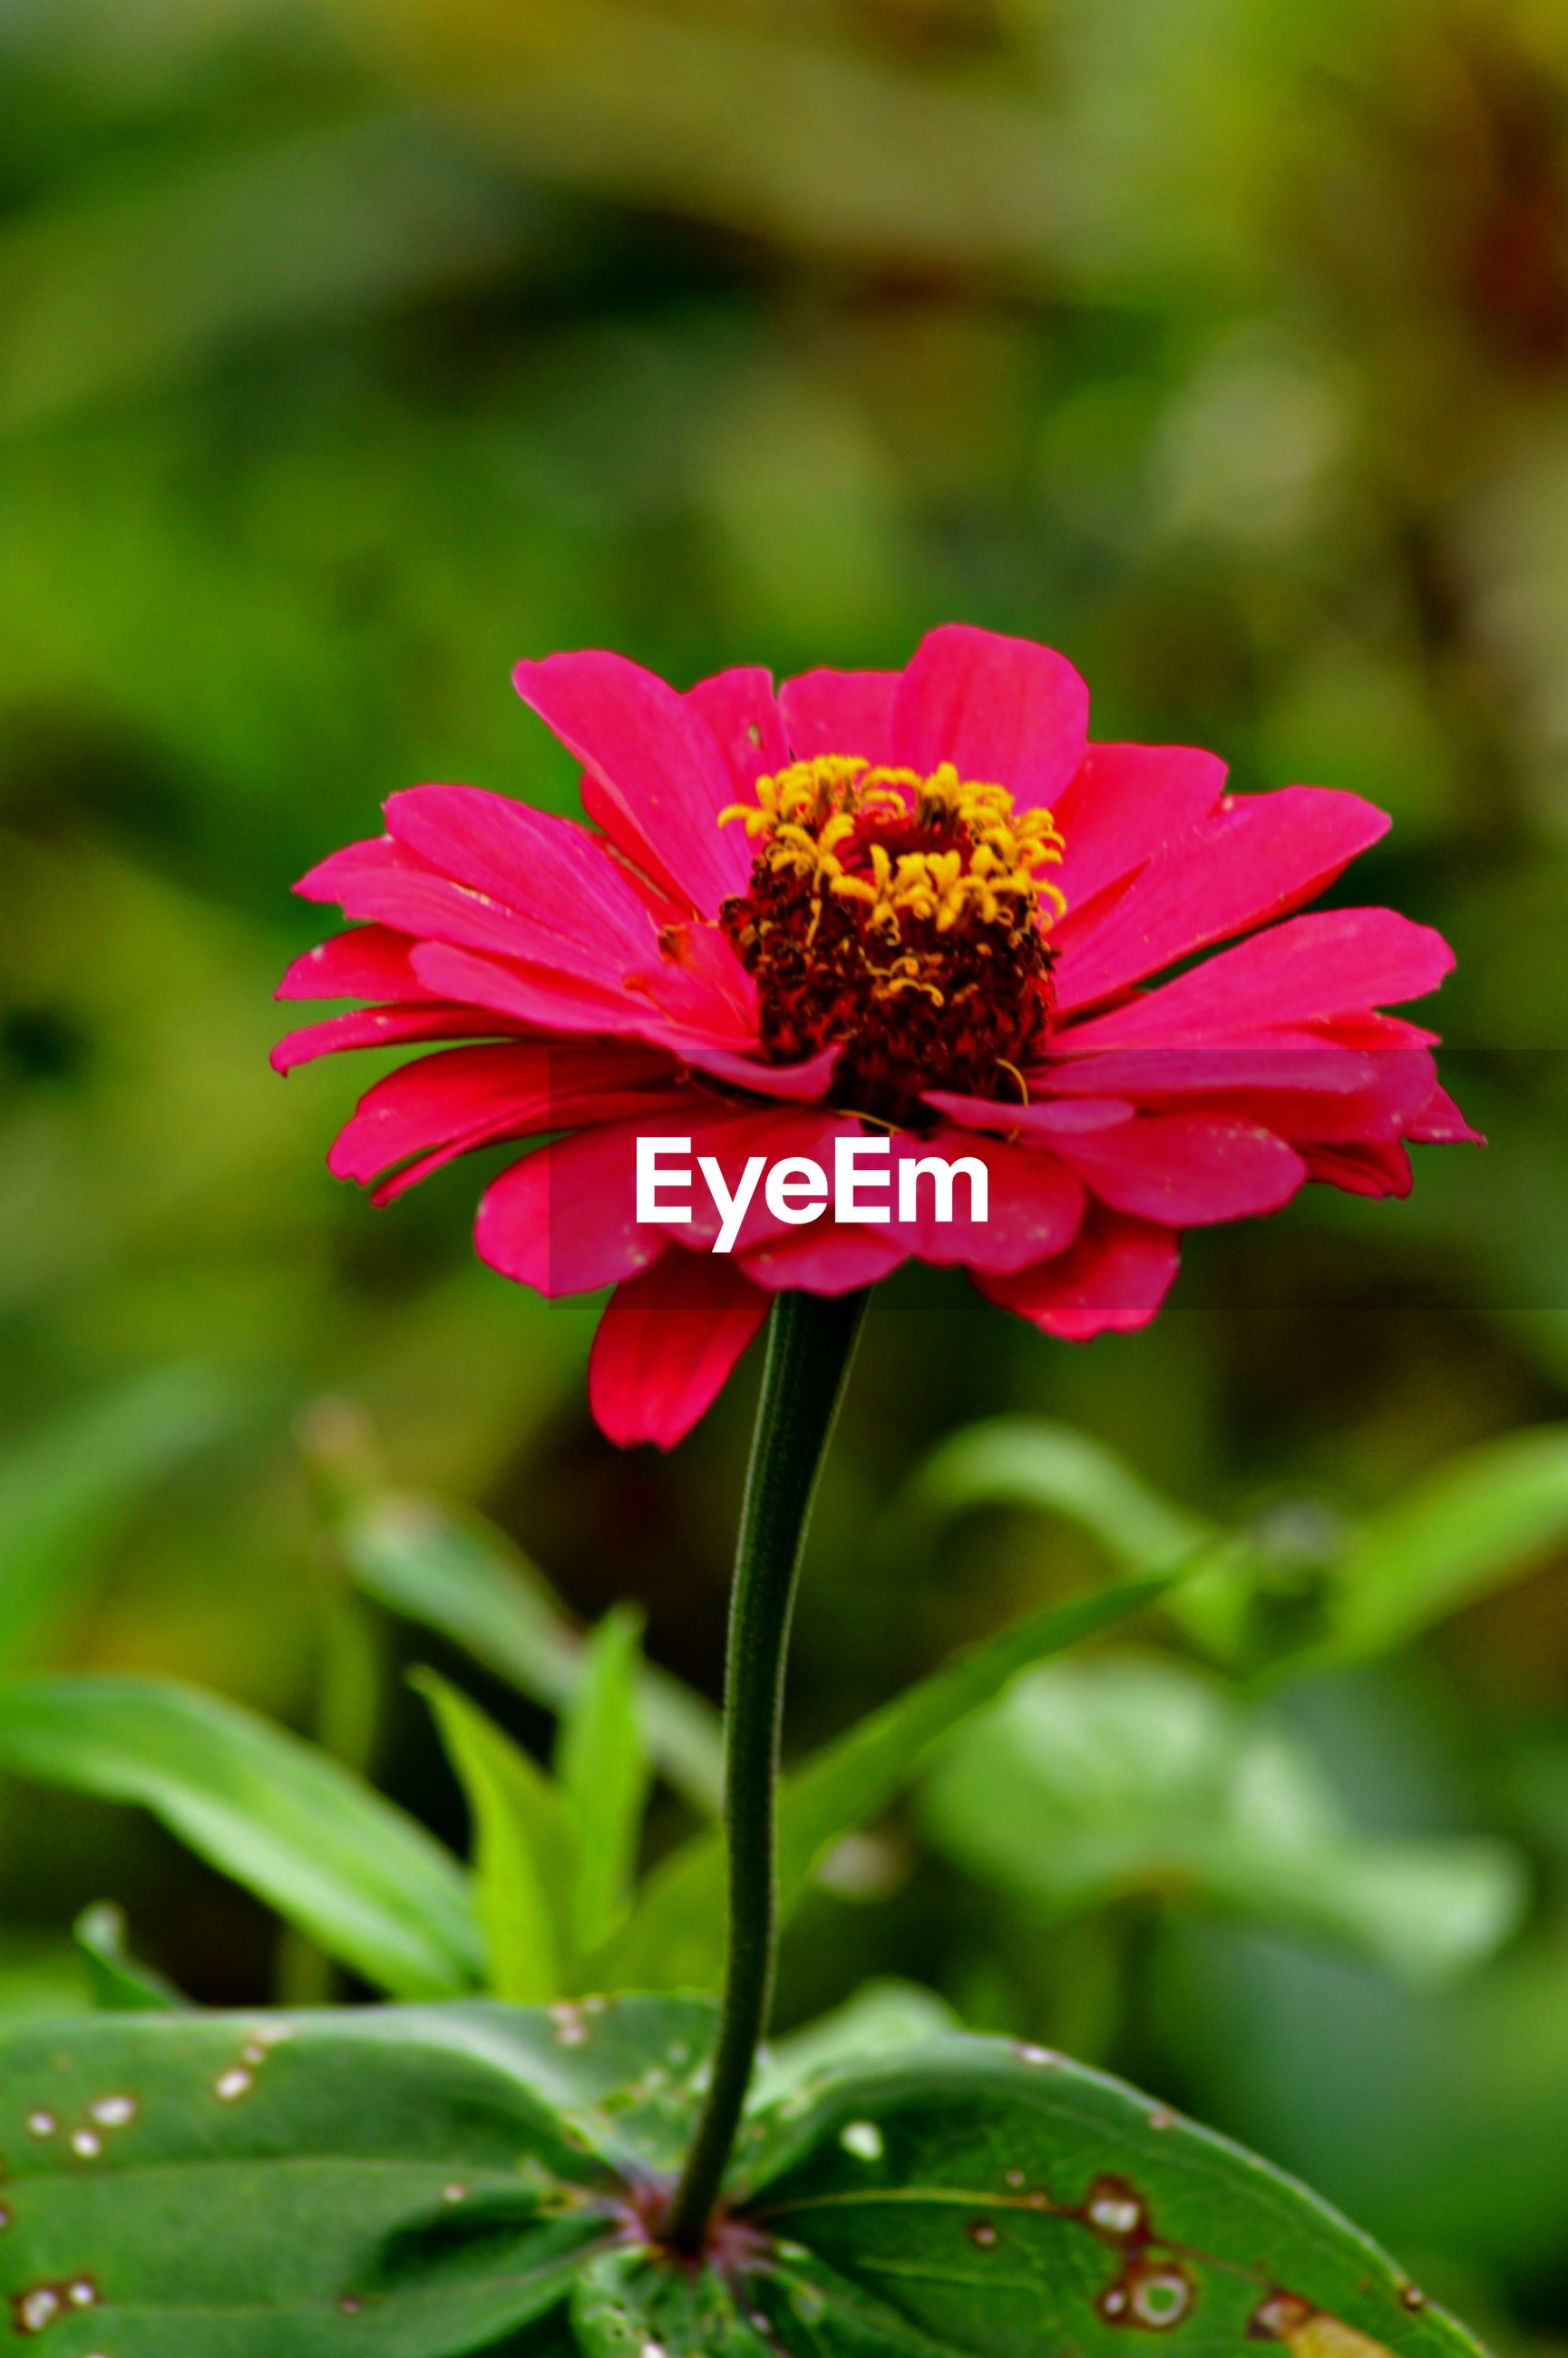 CLOSE-UP OF PINK COSMOS FLOWER ON PLANT